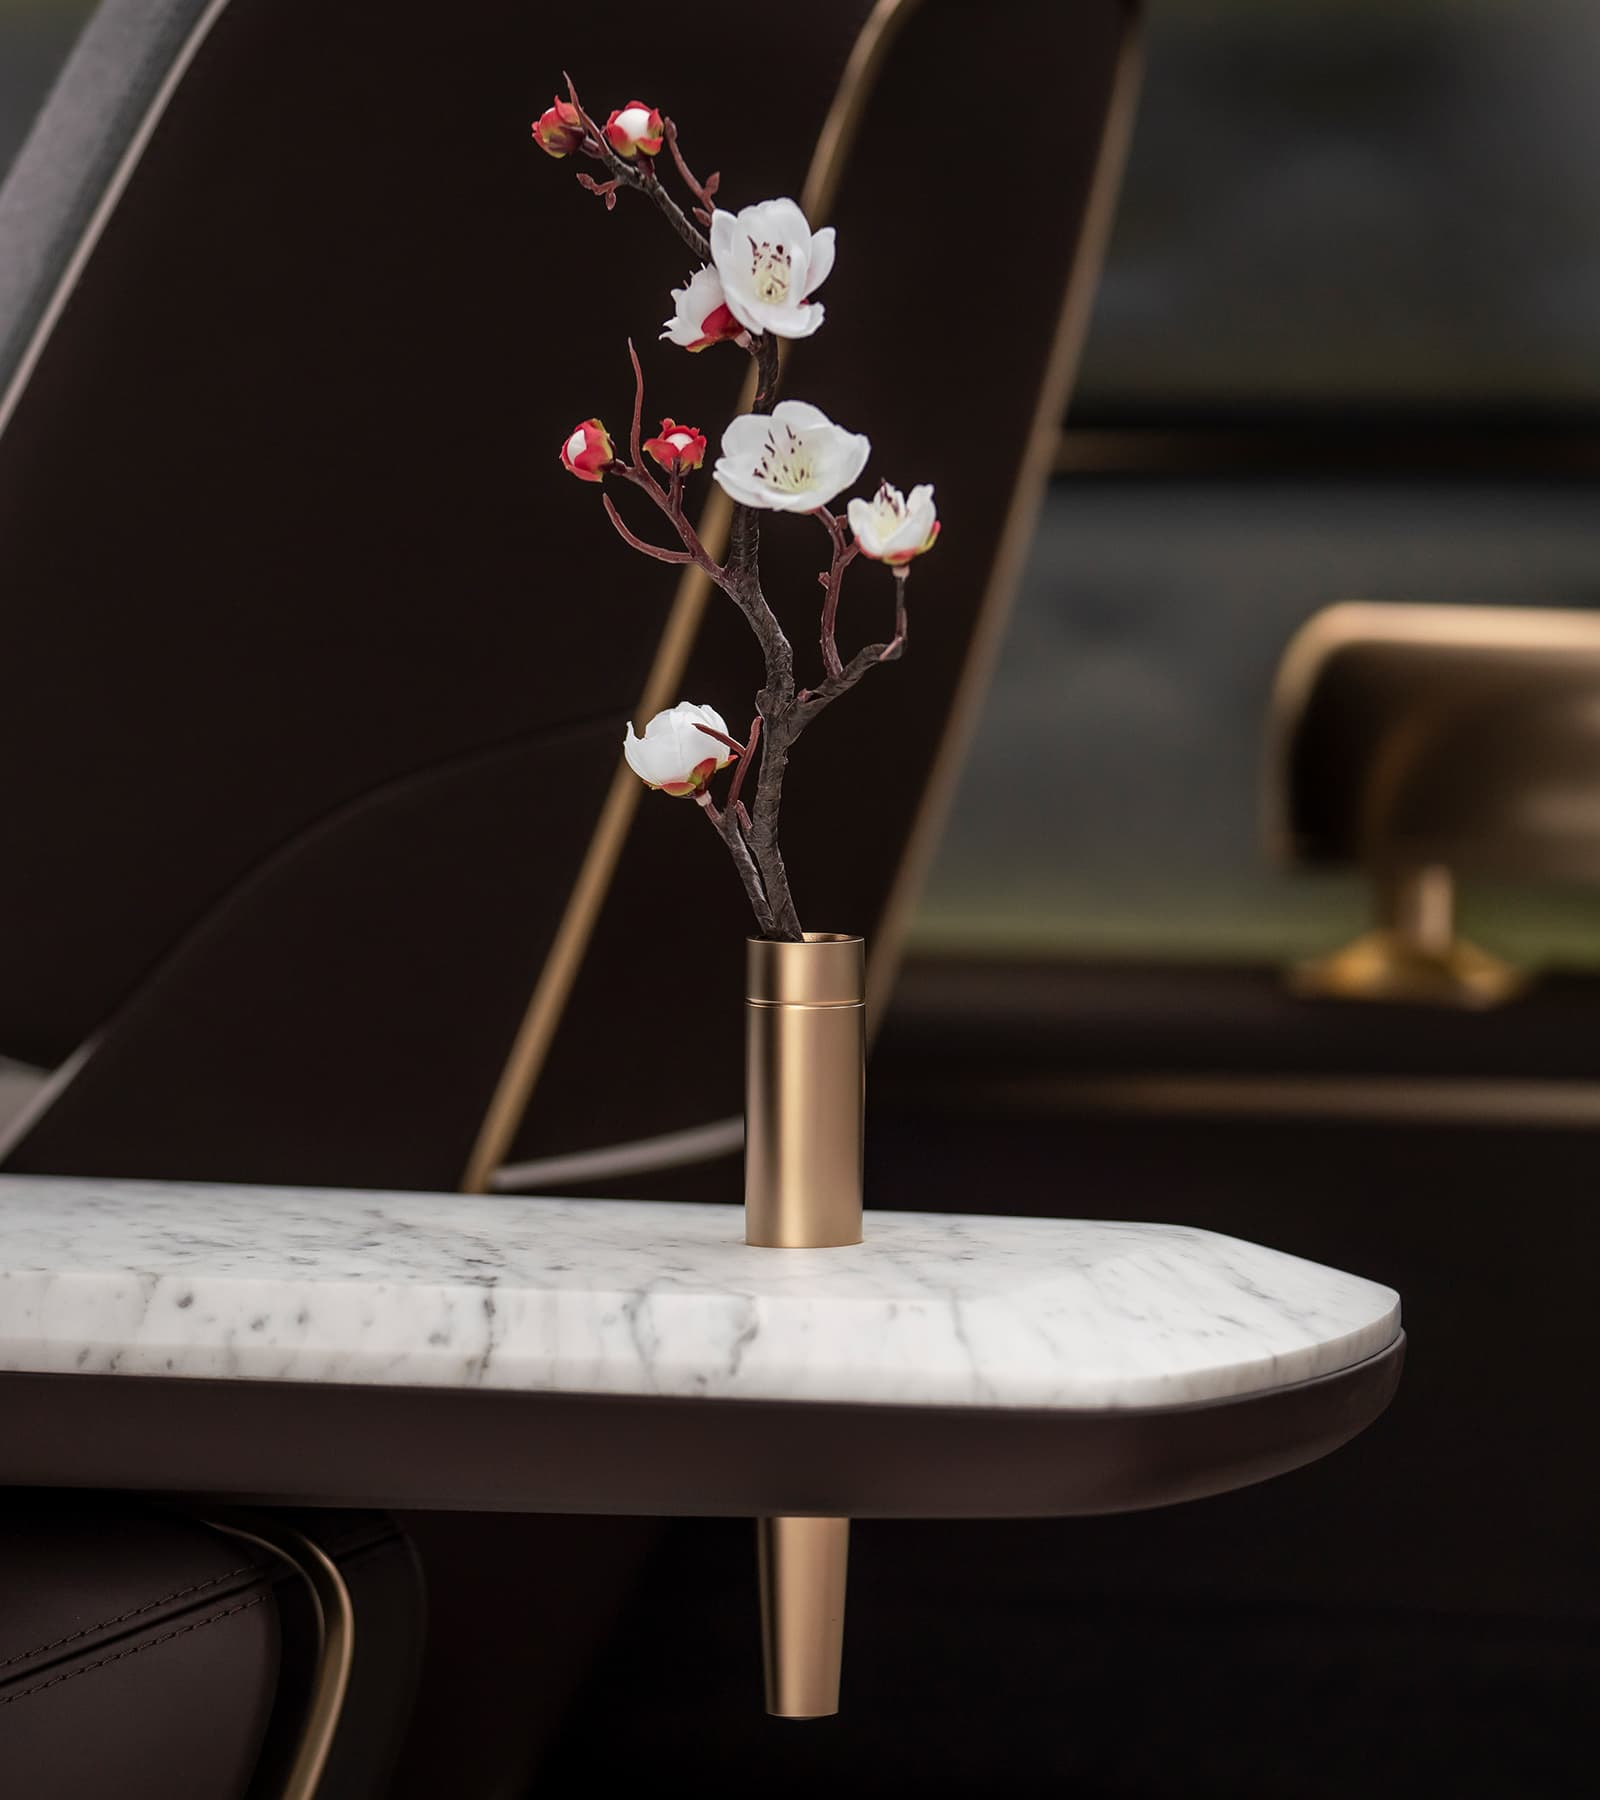 Infiniti QX Inspiration interior divider with flowers